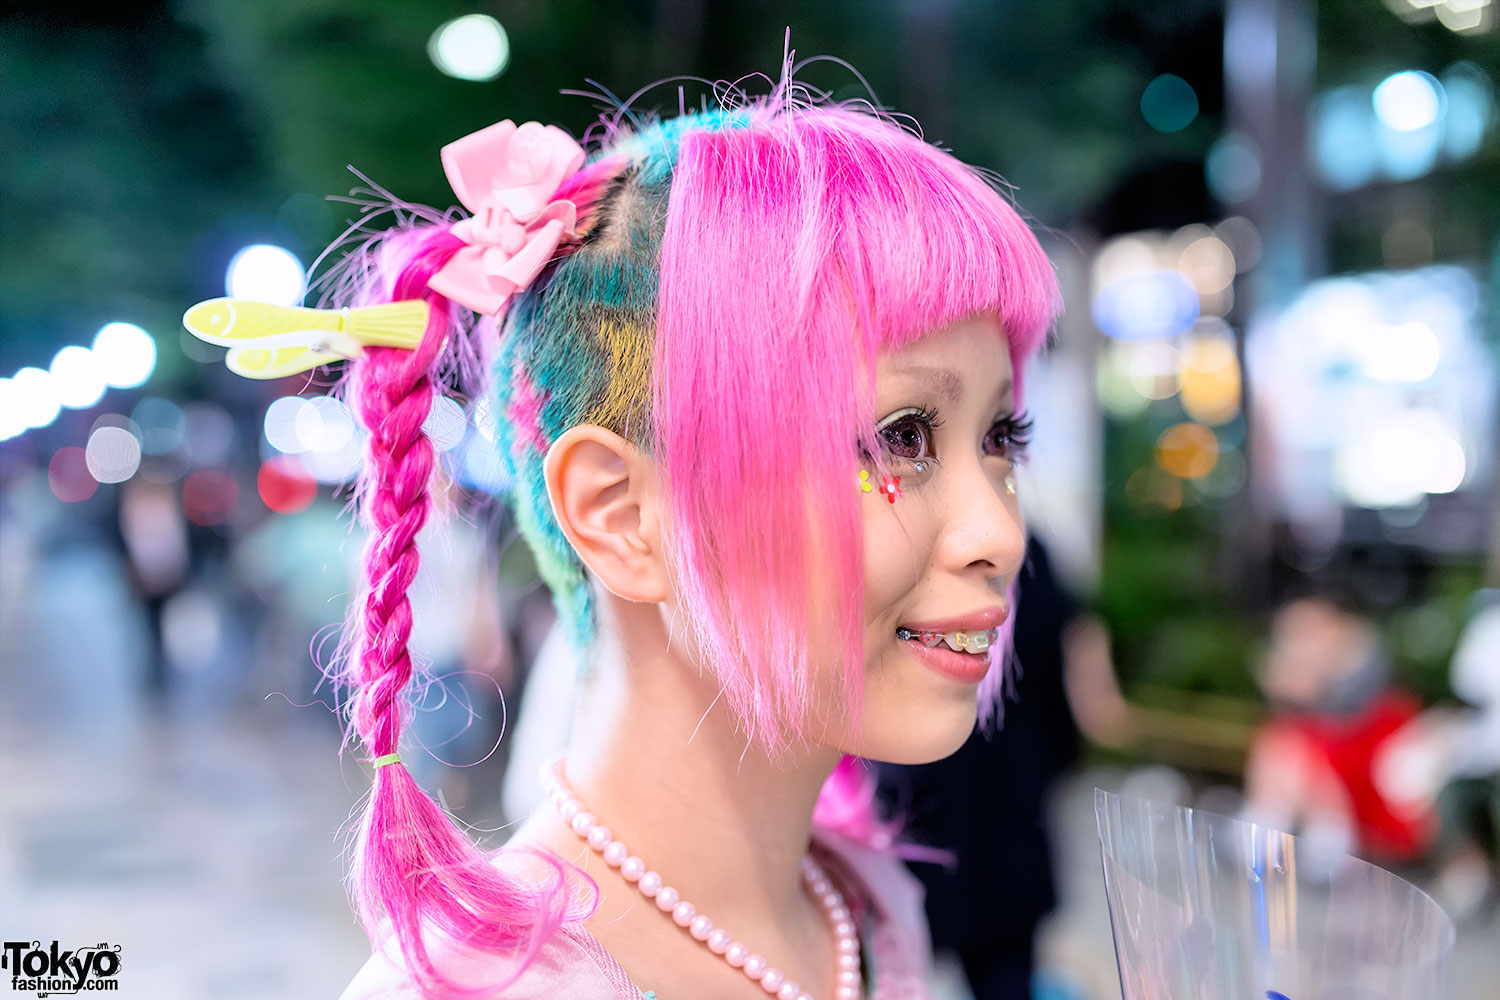 Haruka Kurebayashi W Quot Magical Girl Quot Dress Amp Pink Braids